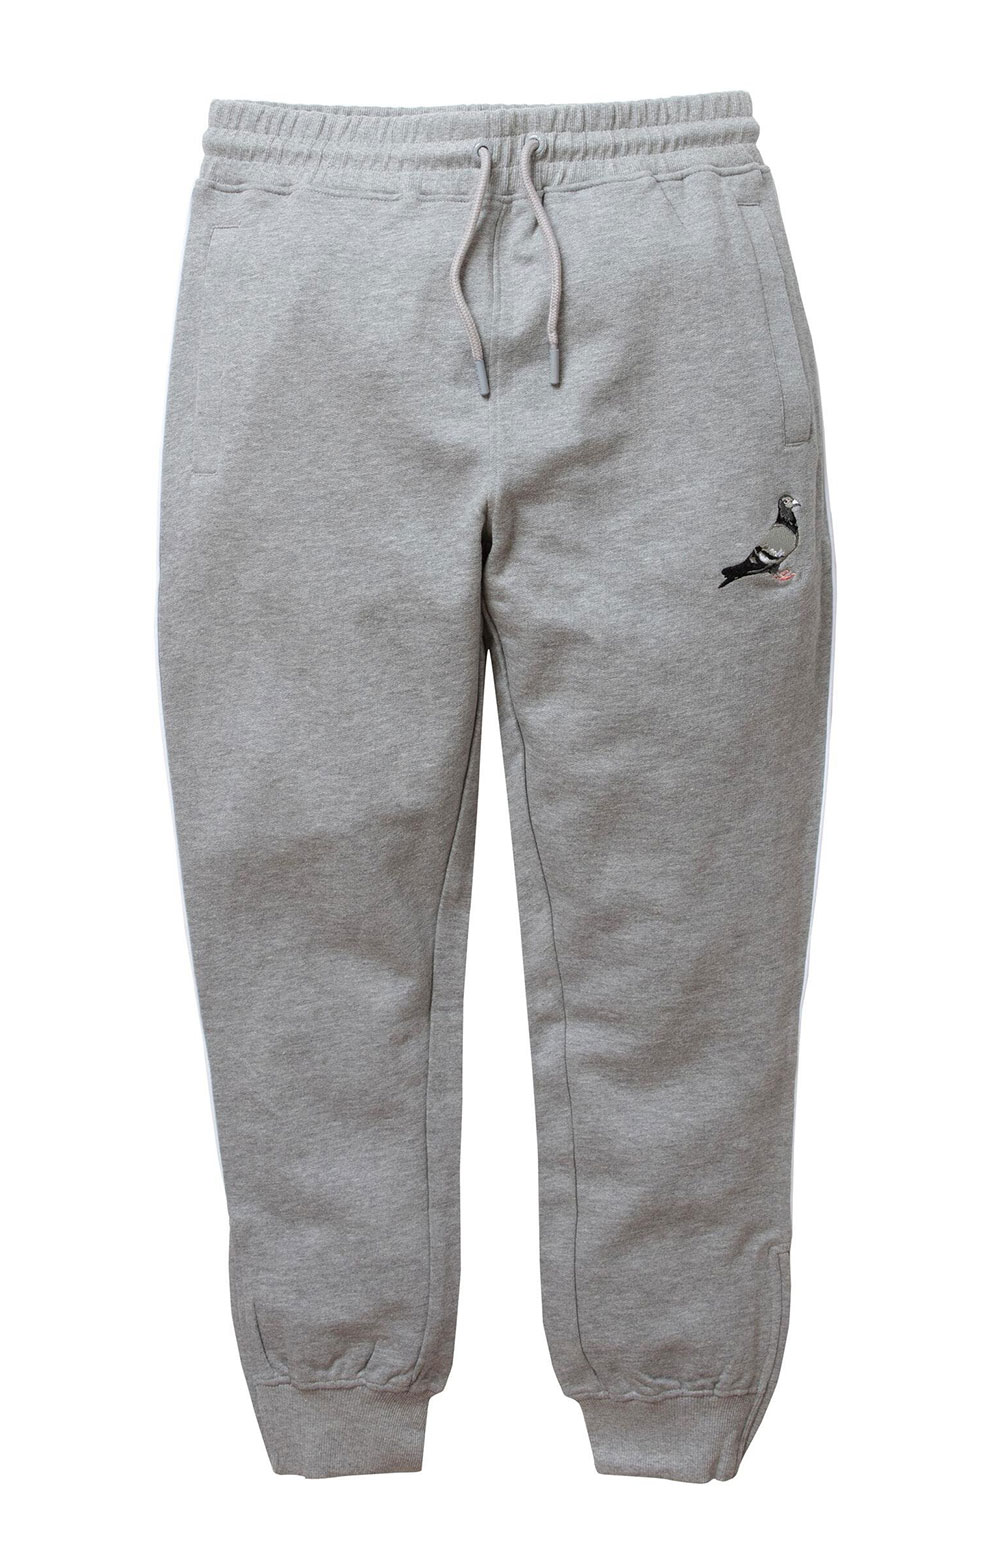 Piped Sweatpant - Heather Grey 2